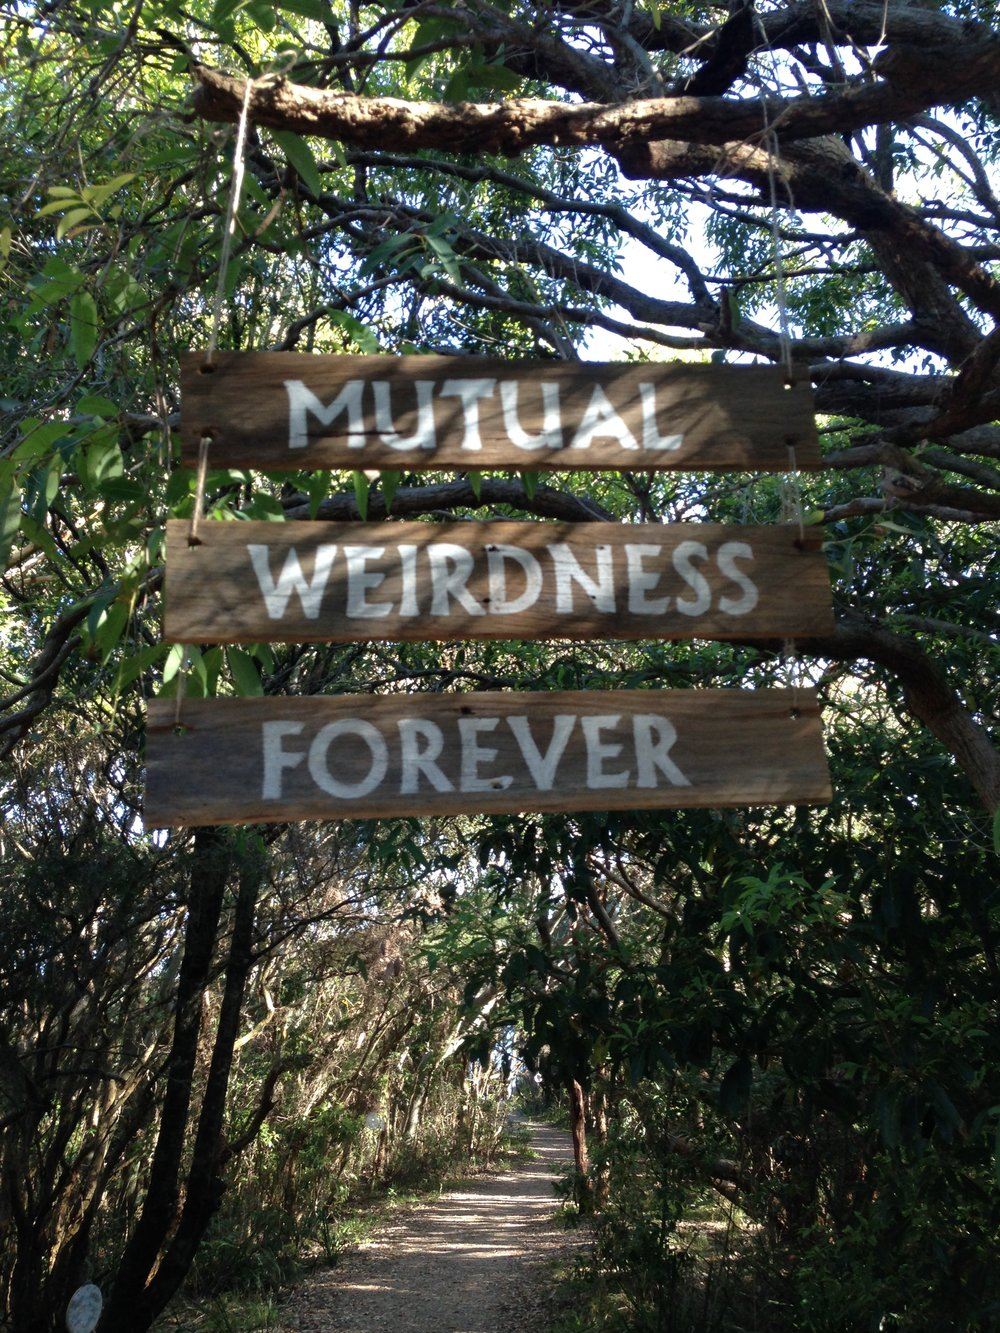 Mutual Weirdness Forever # $10